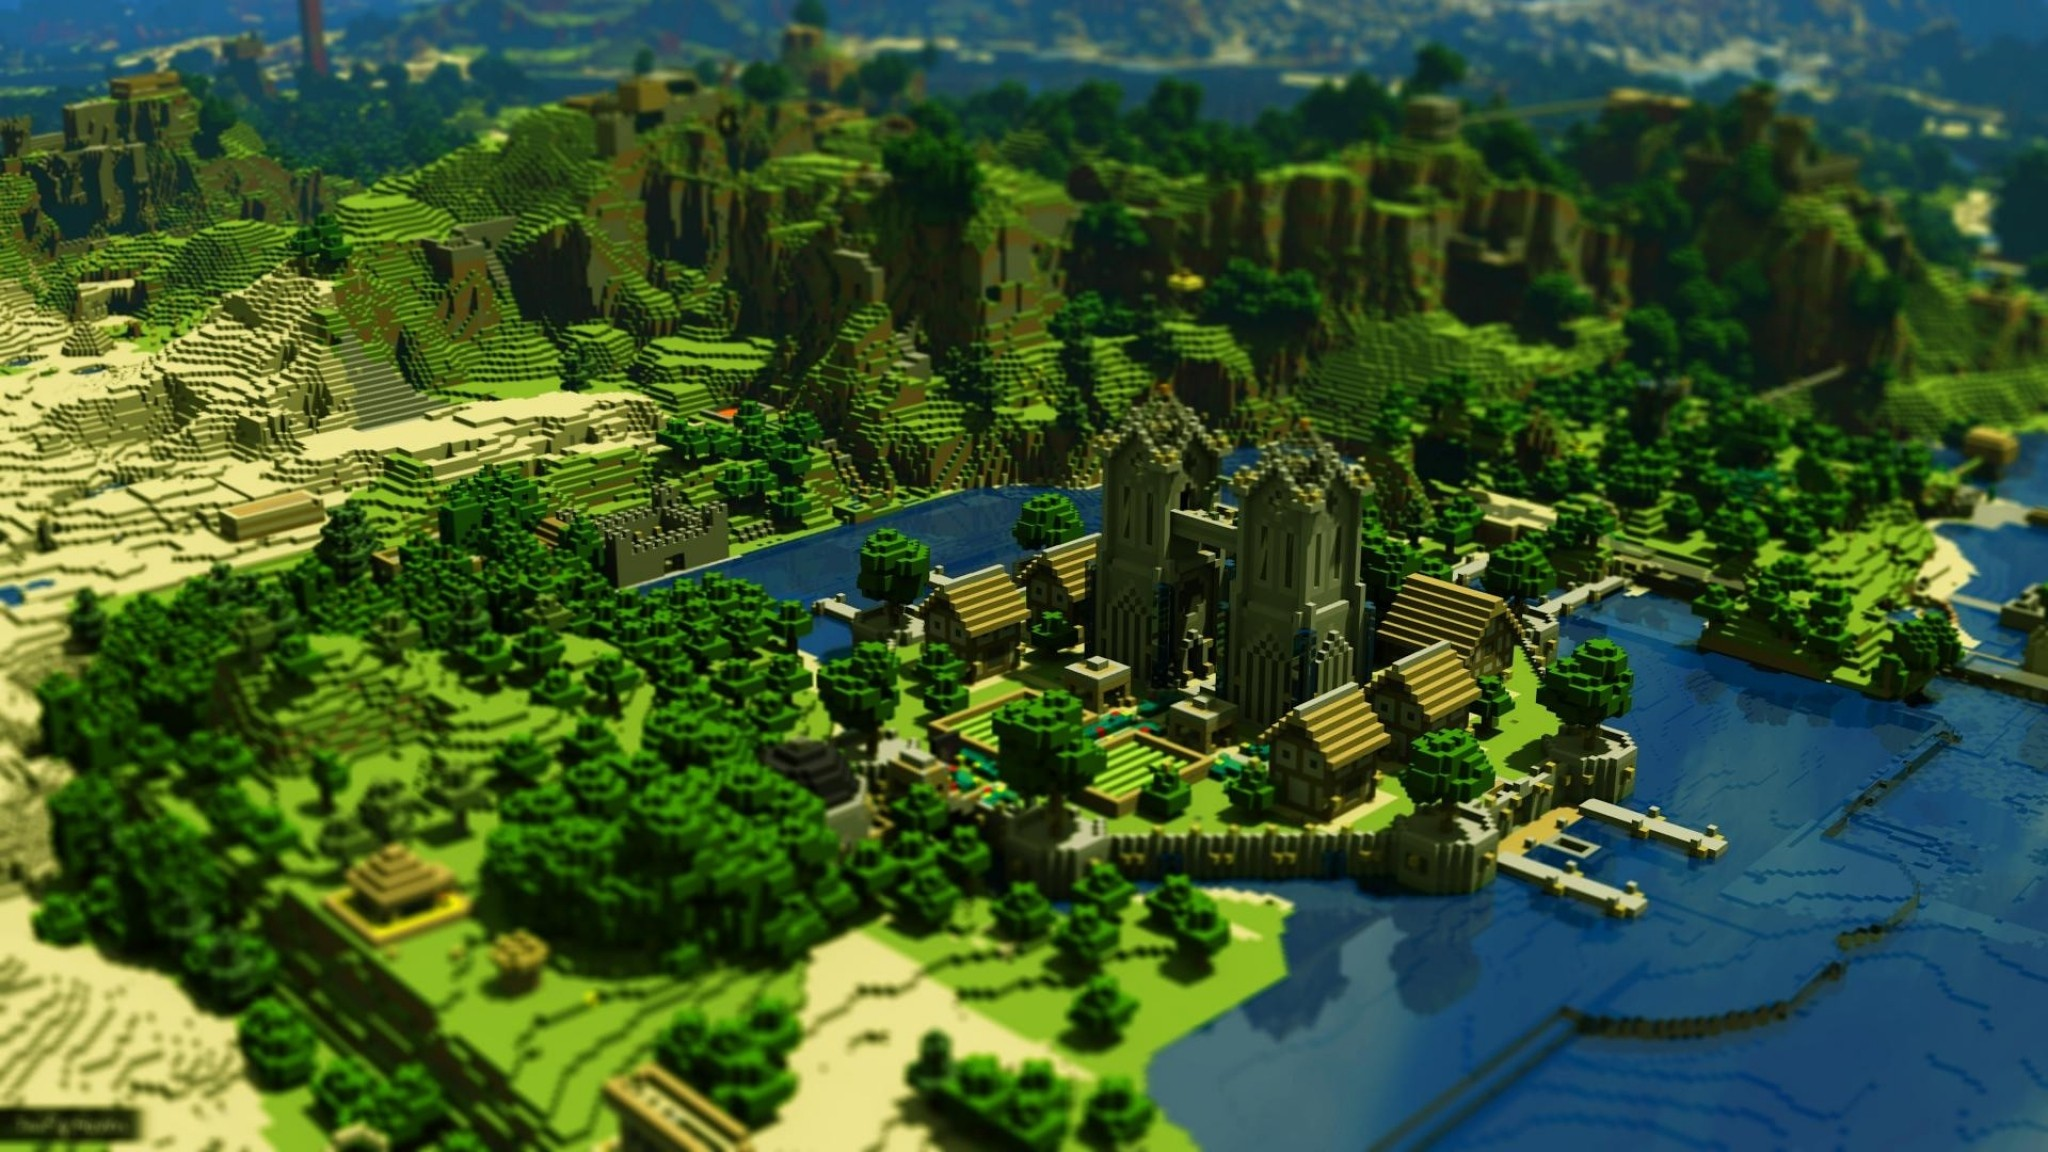 Minecraft Trees Houses Mountains Water 21189 HD Minecraft 2048x1152